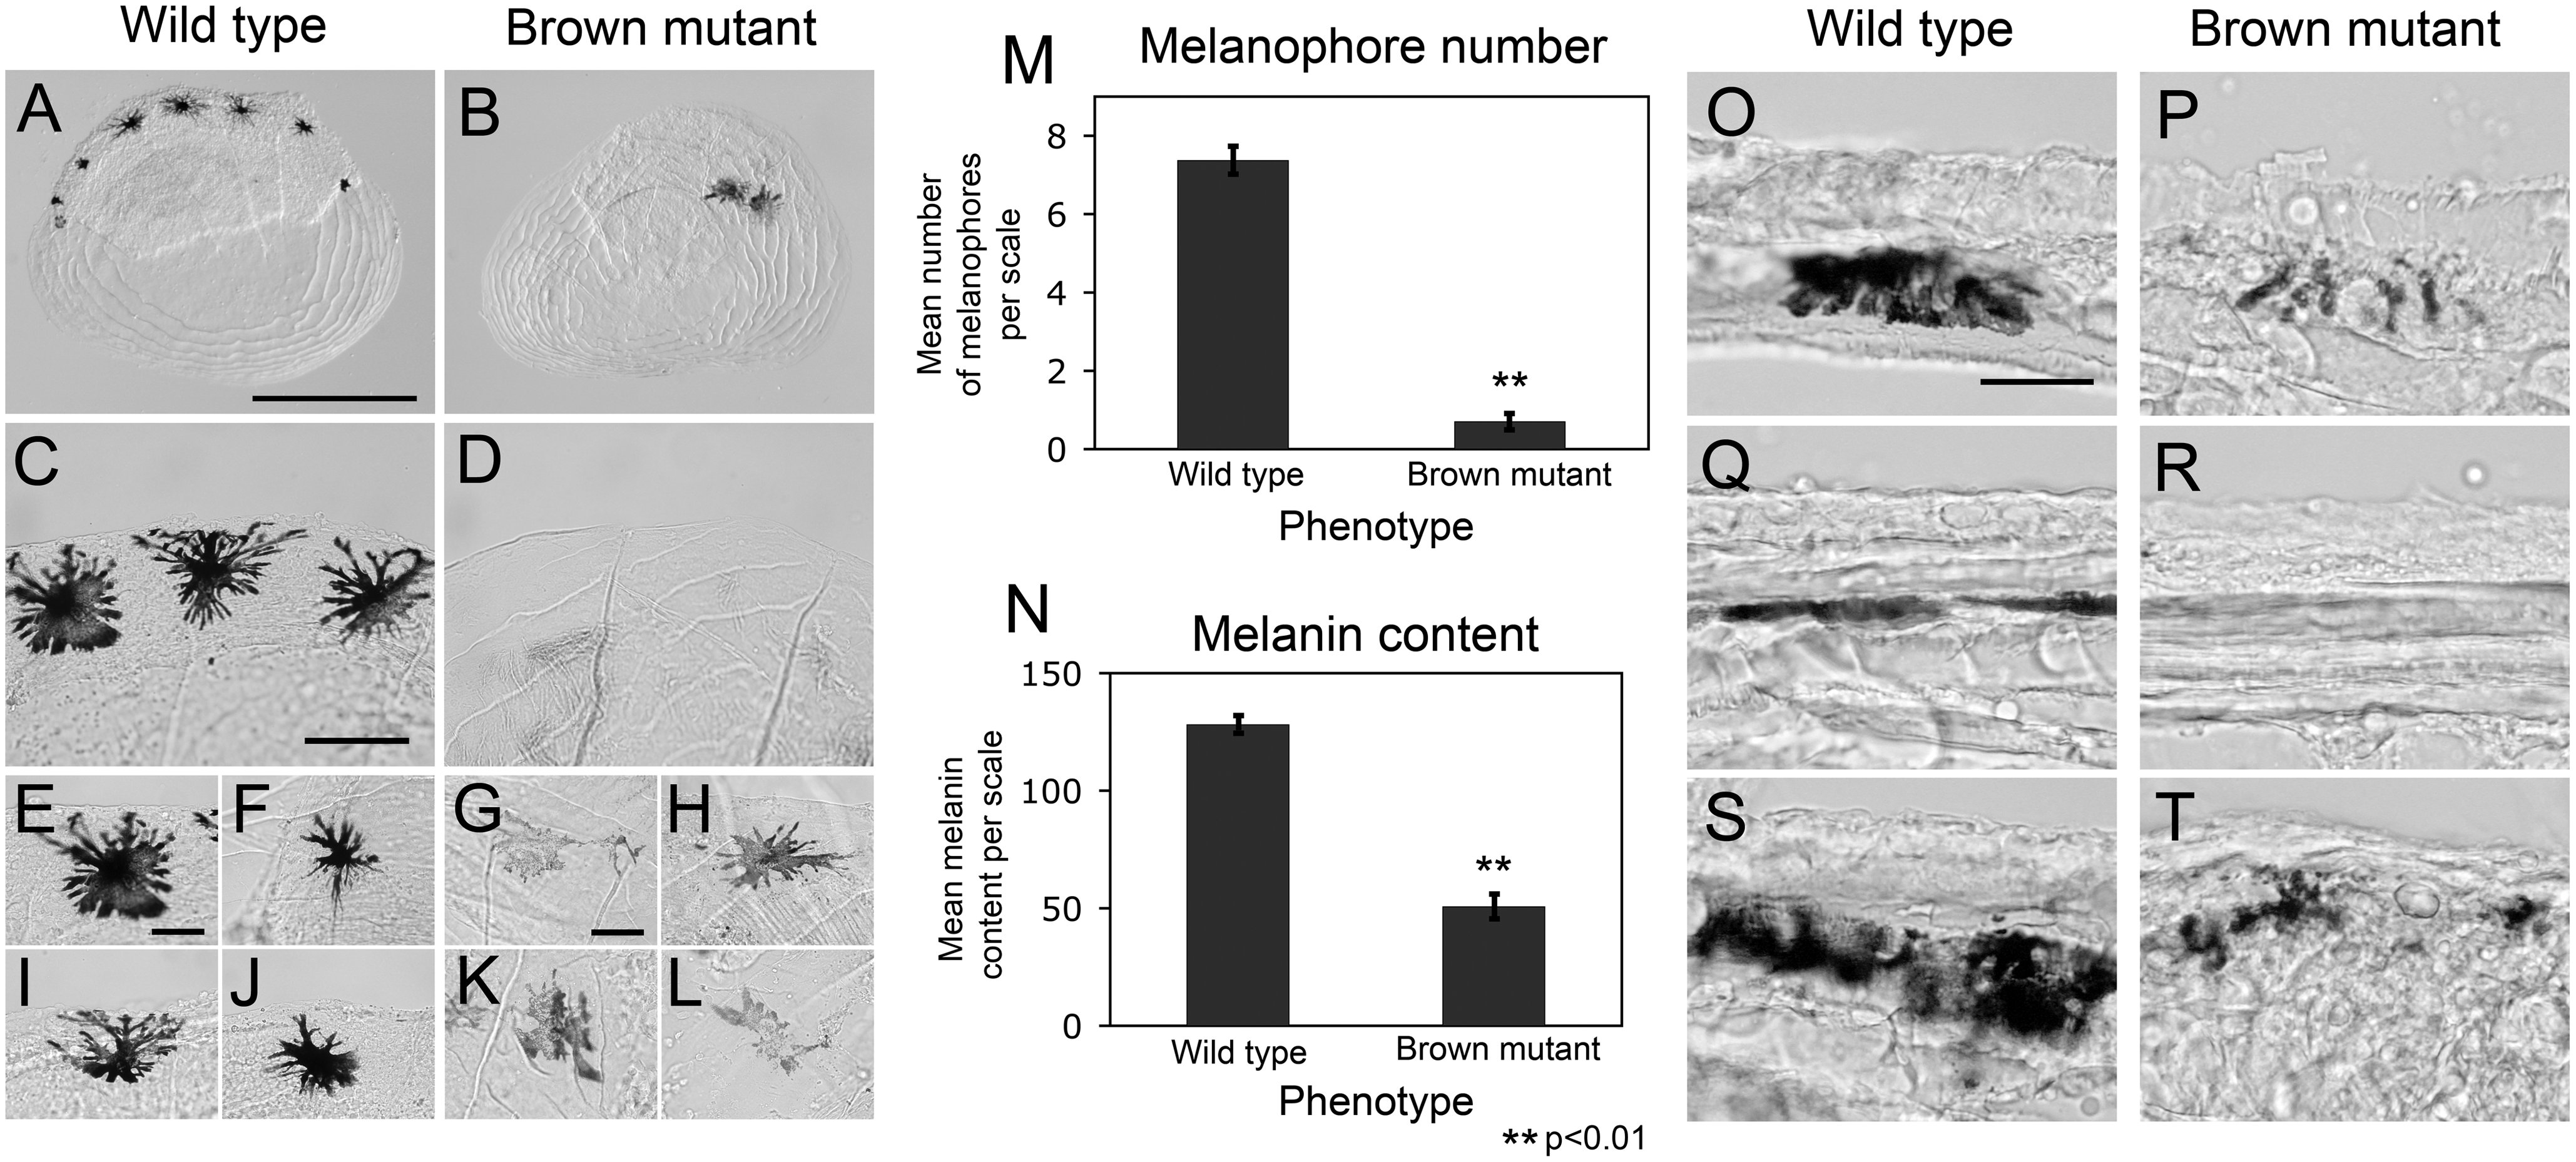 Variation in melanophore number and melanin content in scales derived from Surface (wild type) and brown mutant fish.